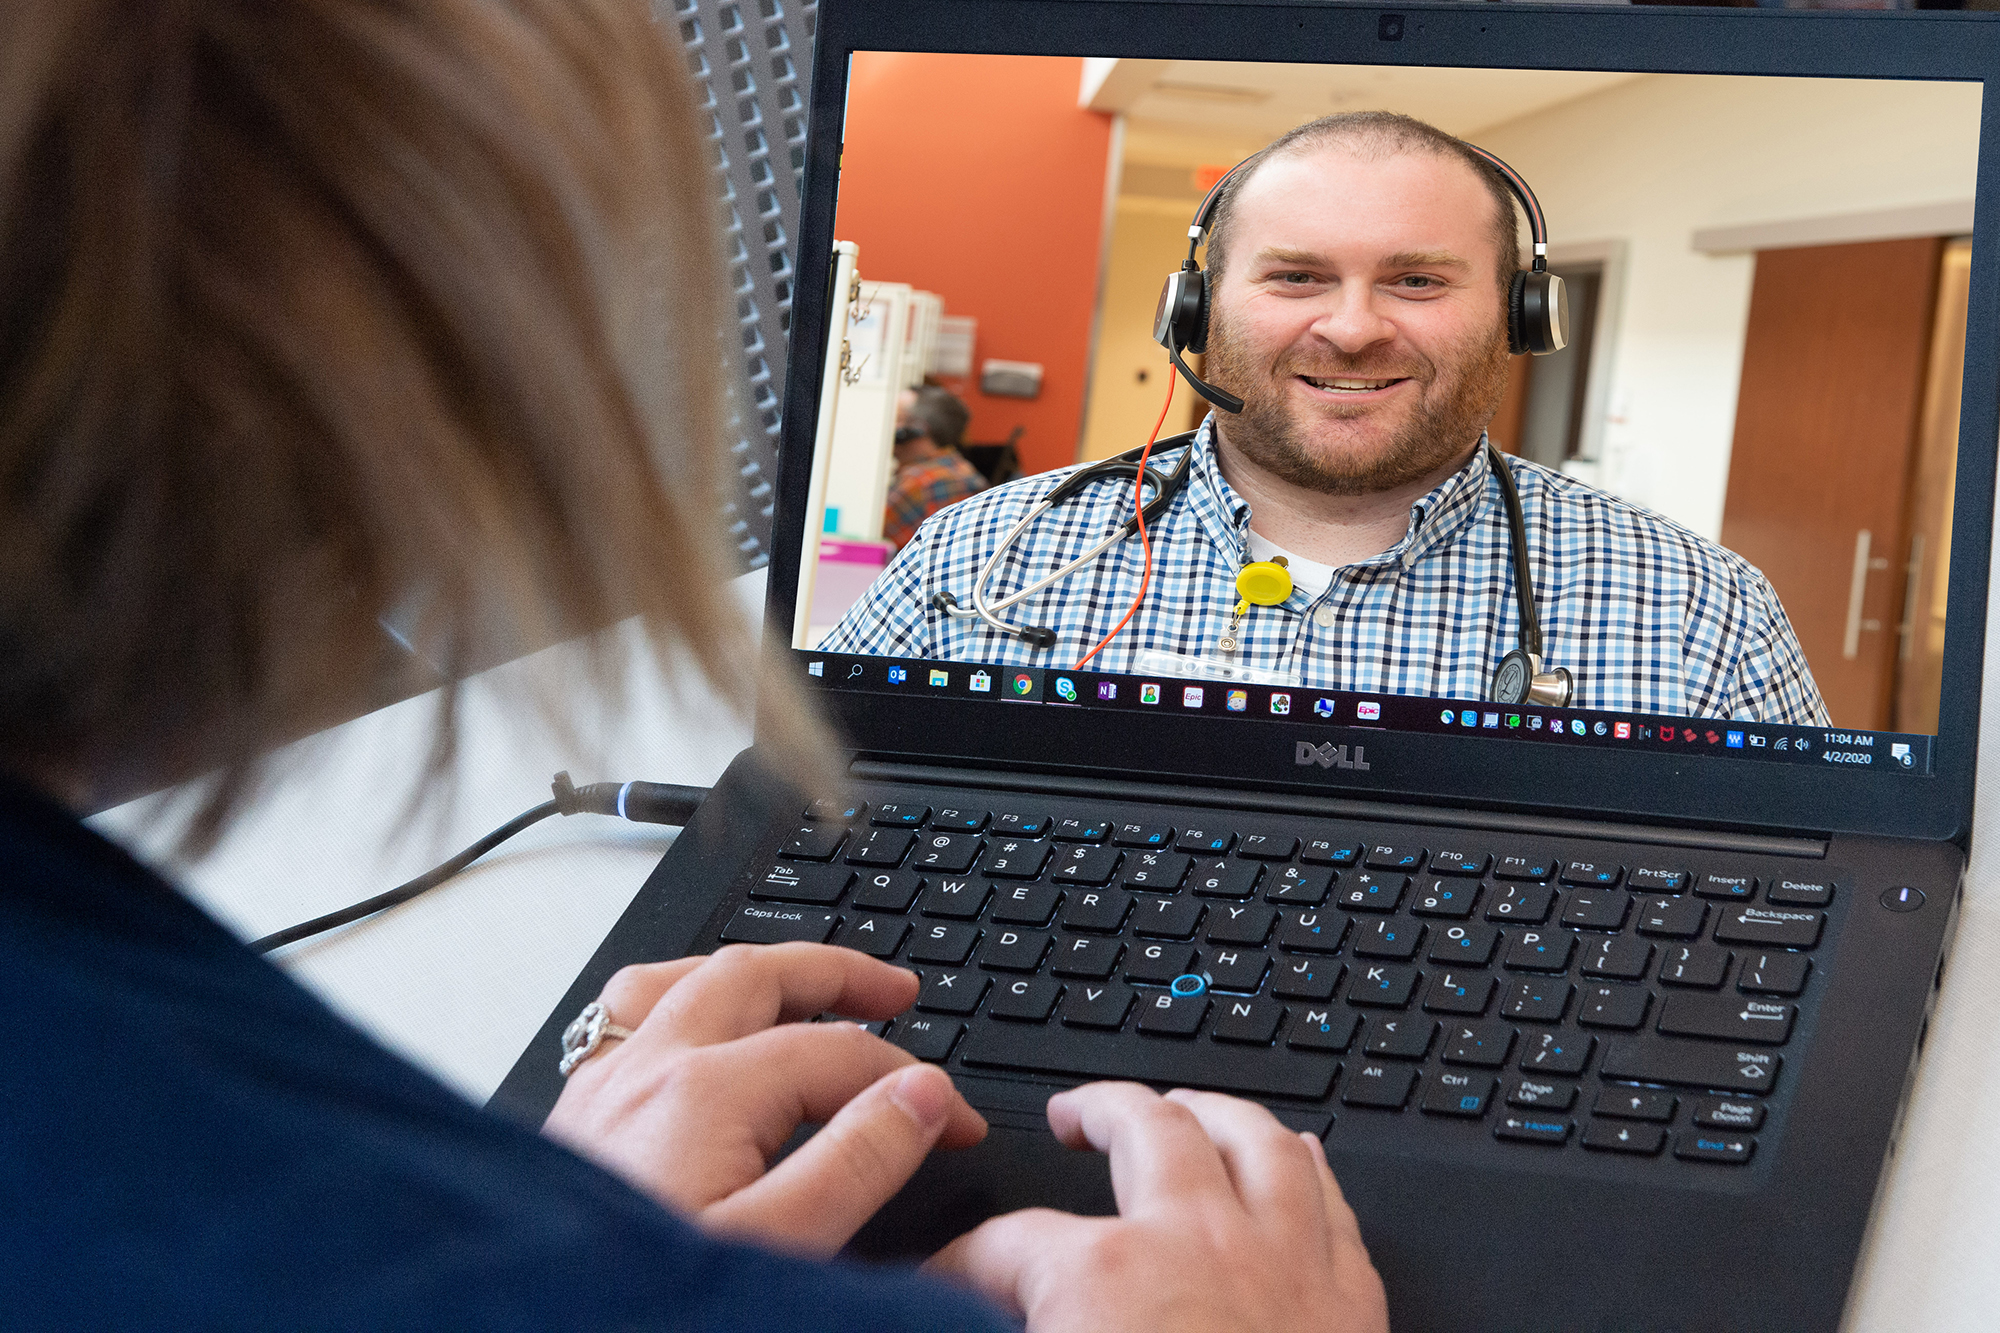 patient speaking with a health care professional via video call on a computer